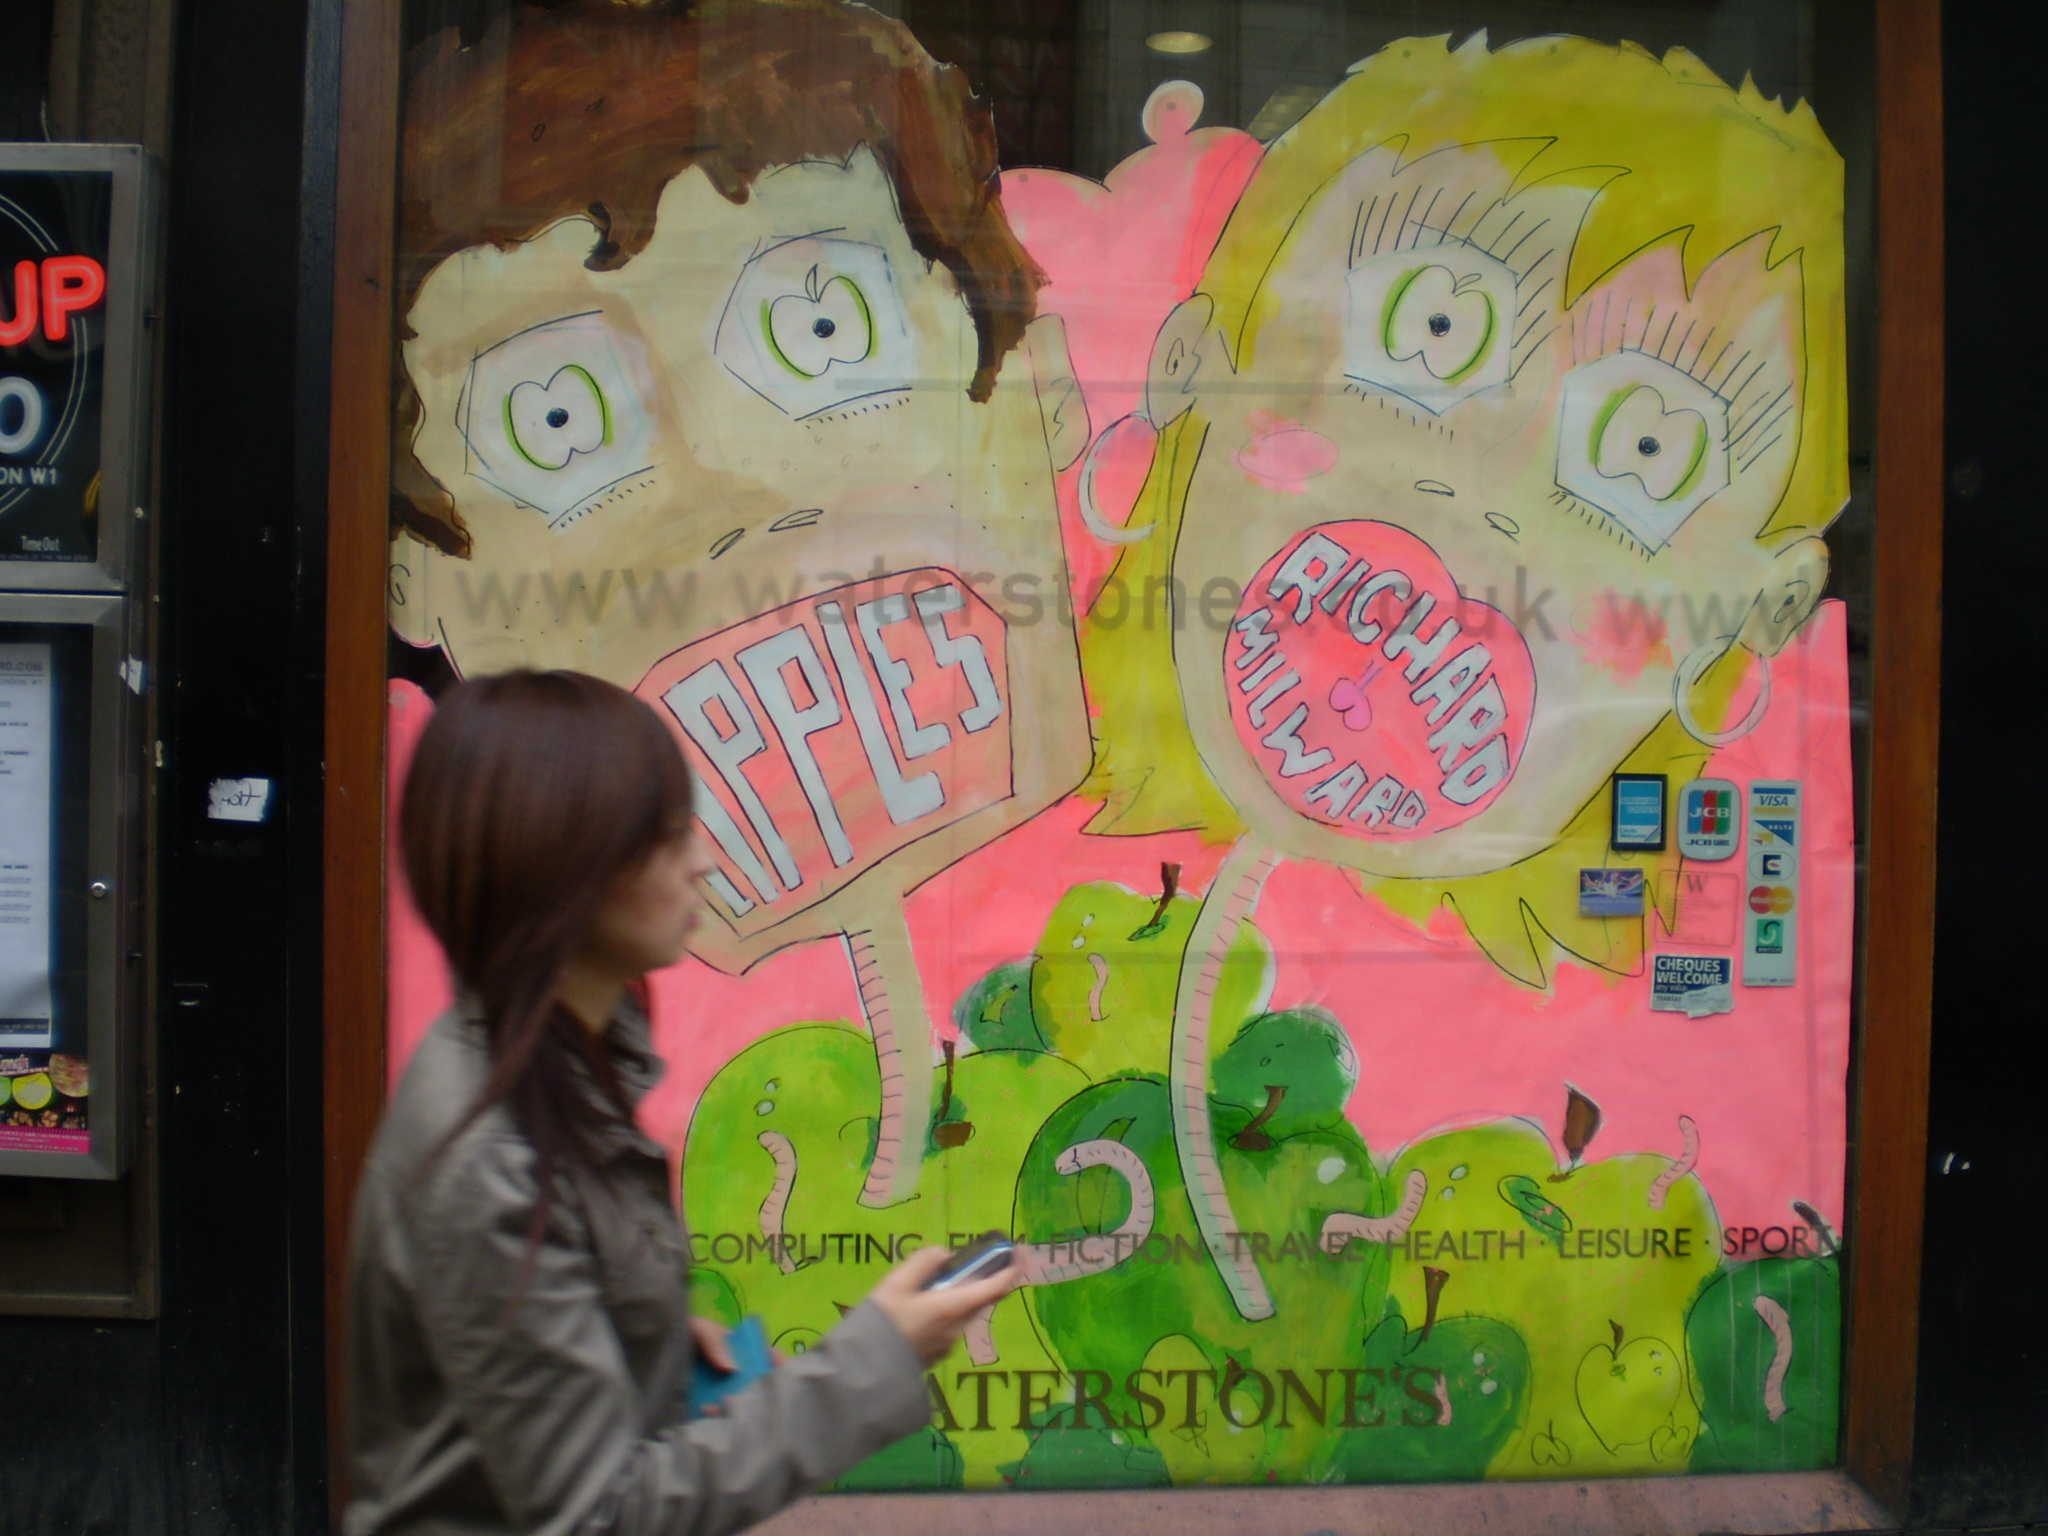 APPLES WINDOW DISPLAY, WATERSTONE'S OXFORD ST, LONDON, 2007